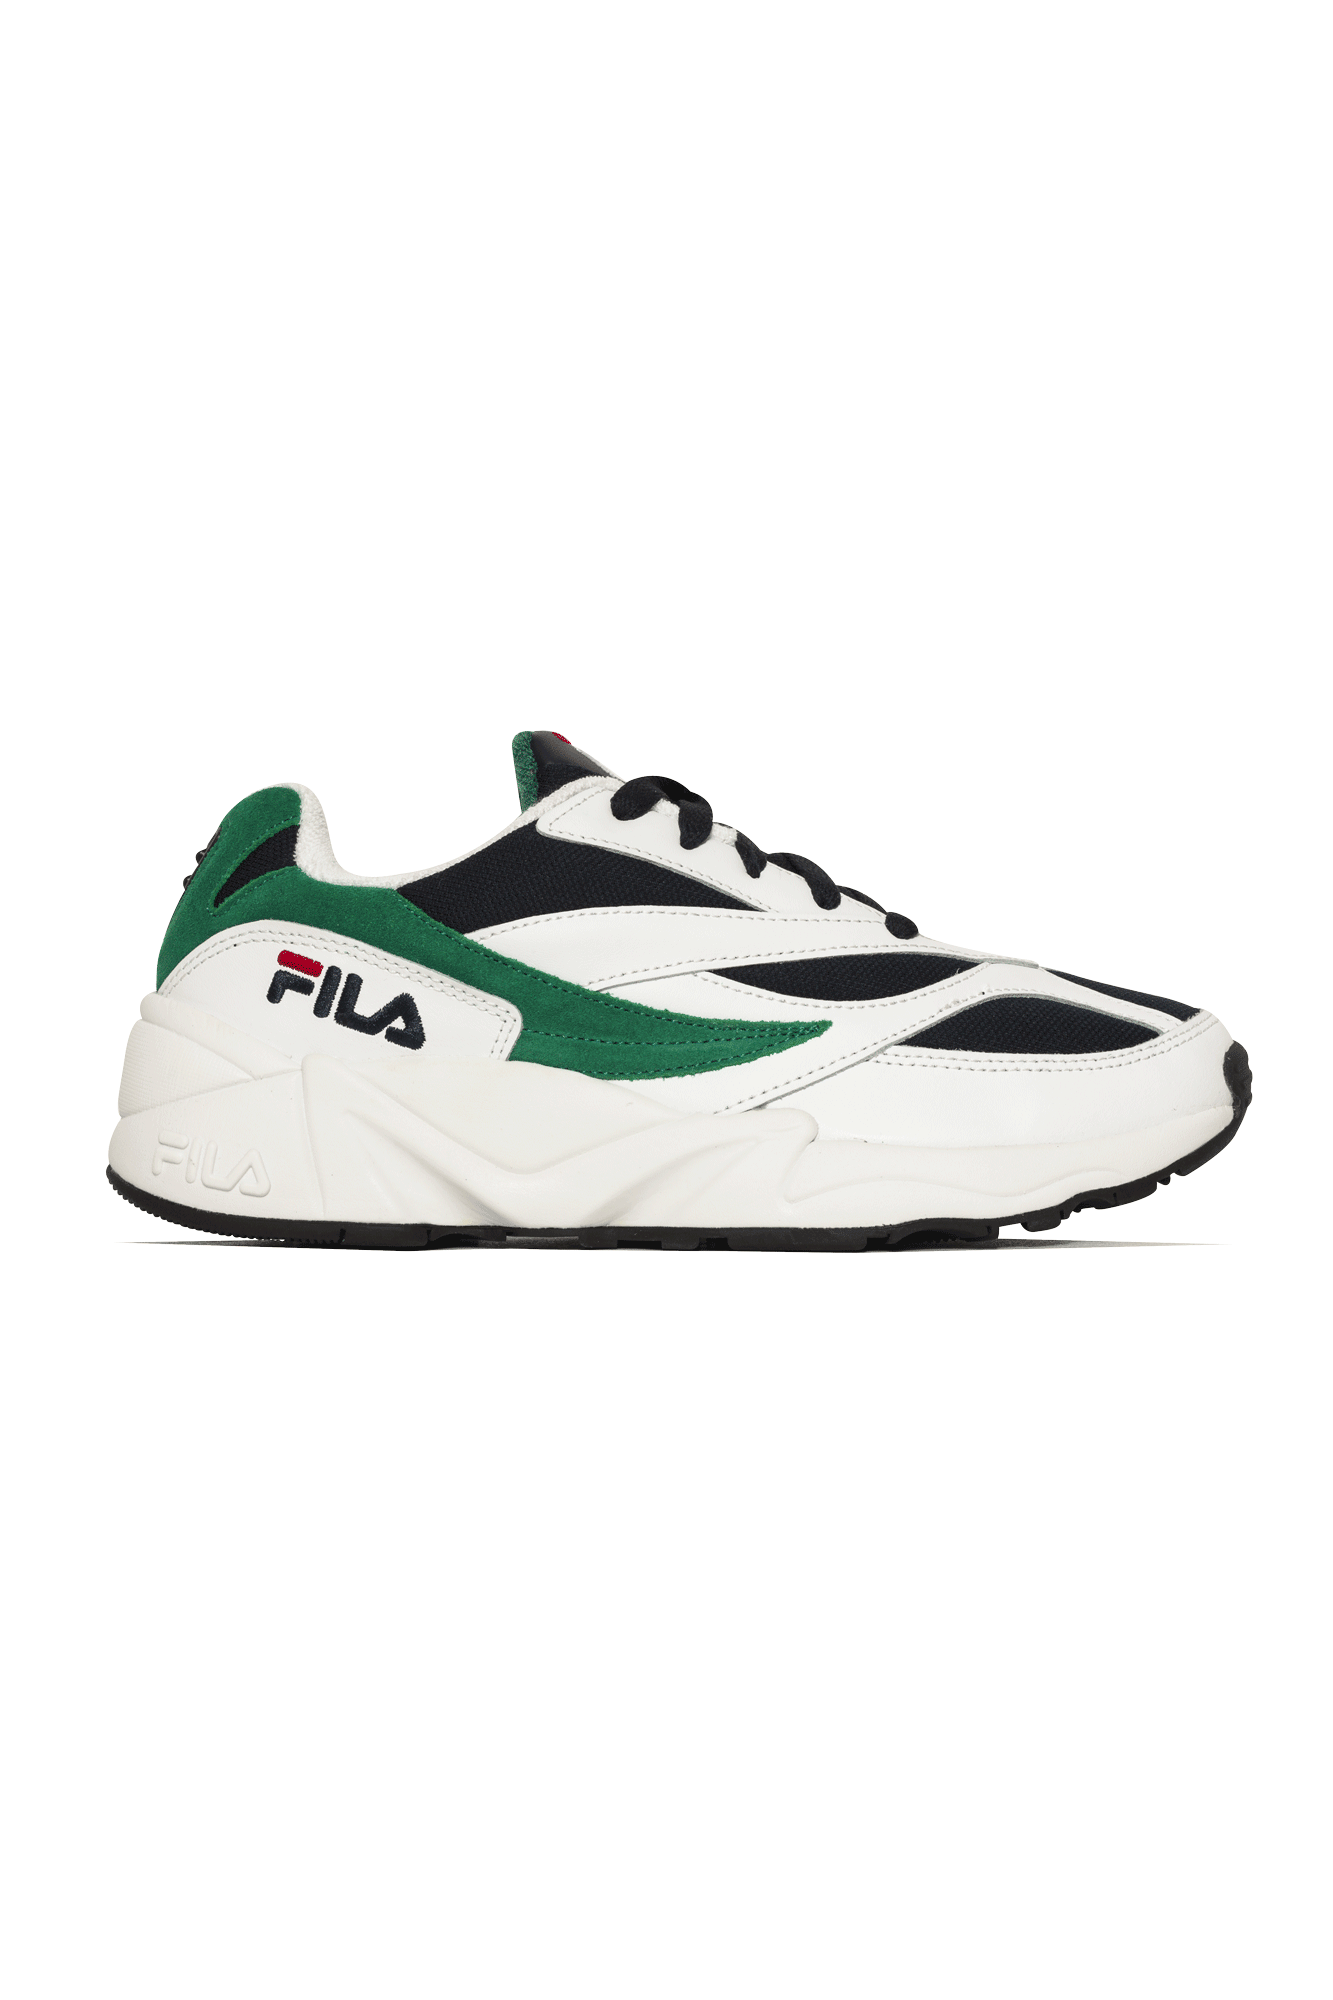 Fila Sneakers Venom Low WMN Bianco 1010291#000#00Q#6 - One Block Down